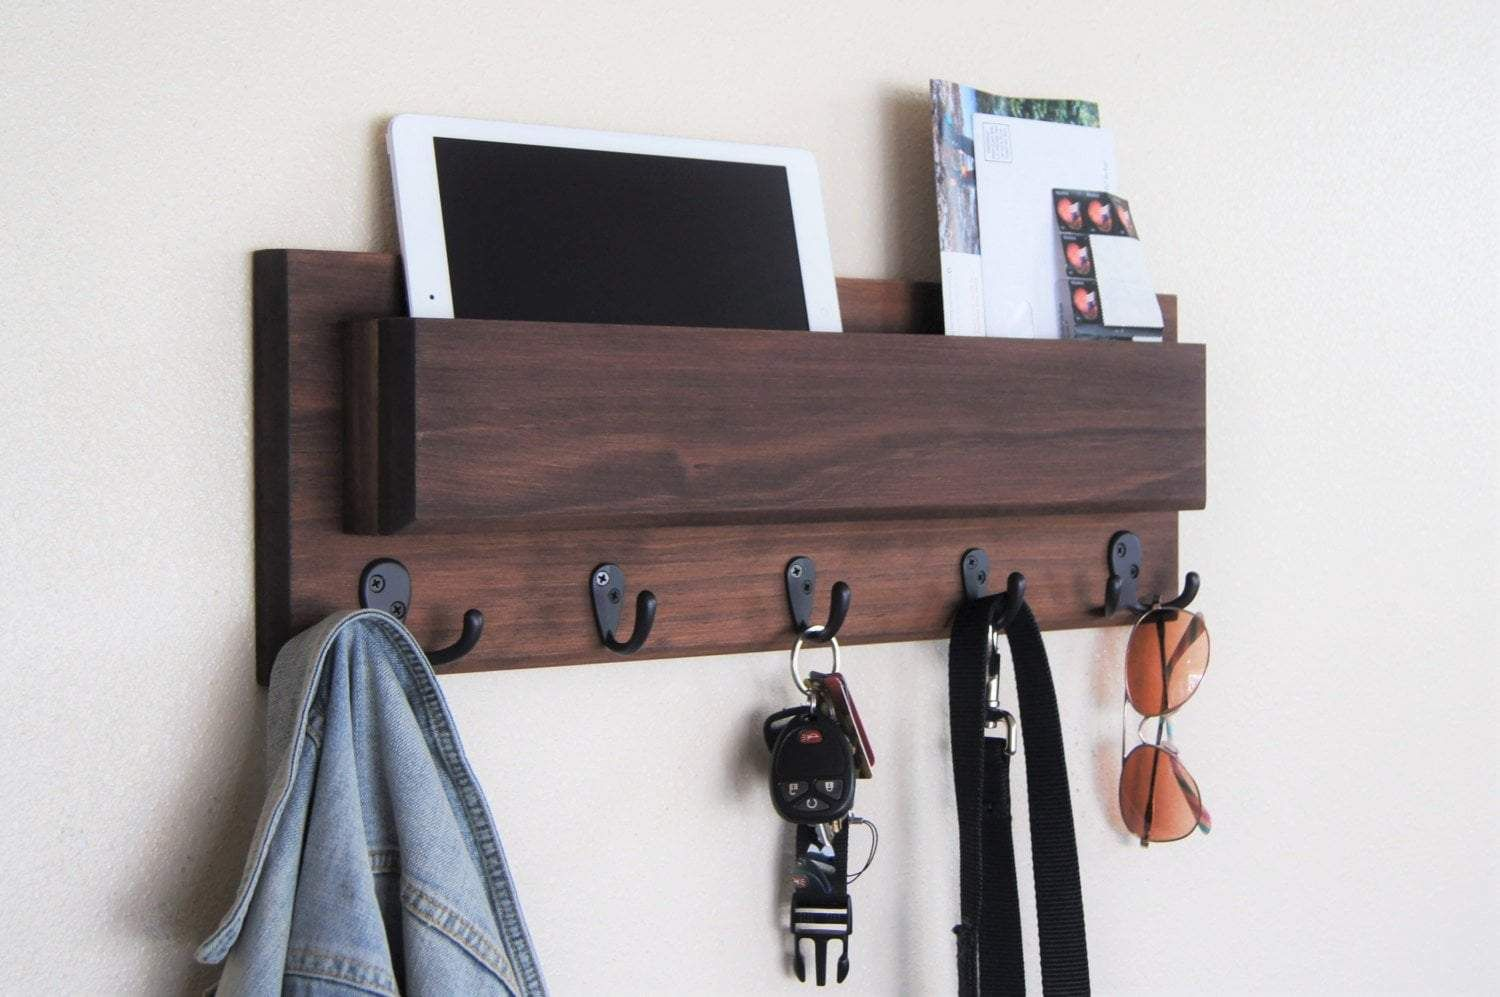 Mail Holder With Hooks Wall Mounted Entryway Organizer Coat Key Rack With Images Coat Rack Wall Entryway Organizer Wall Entryway Organization